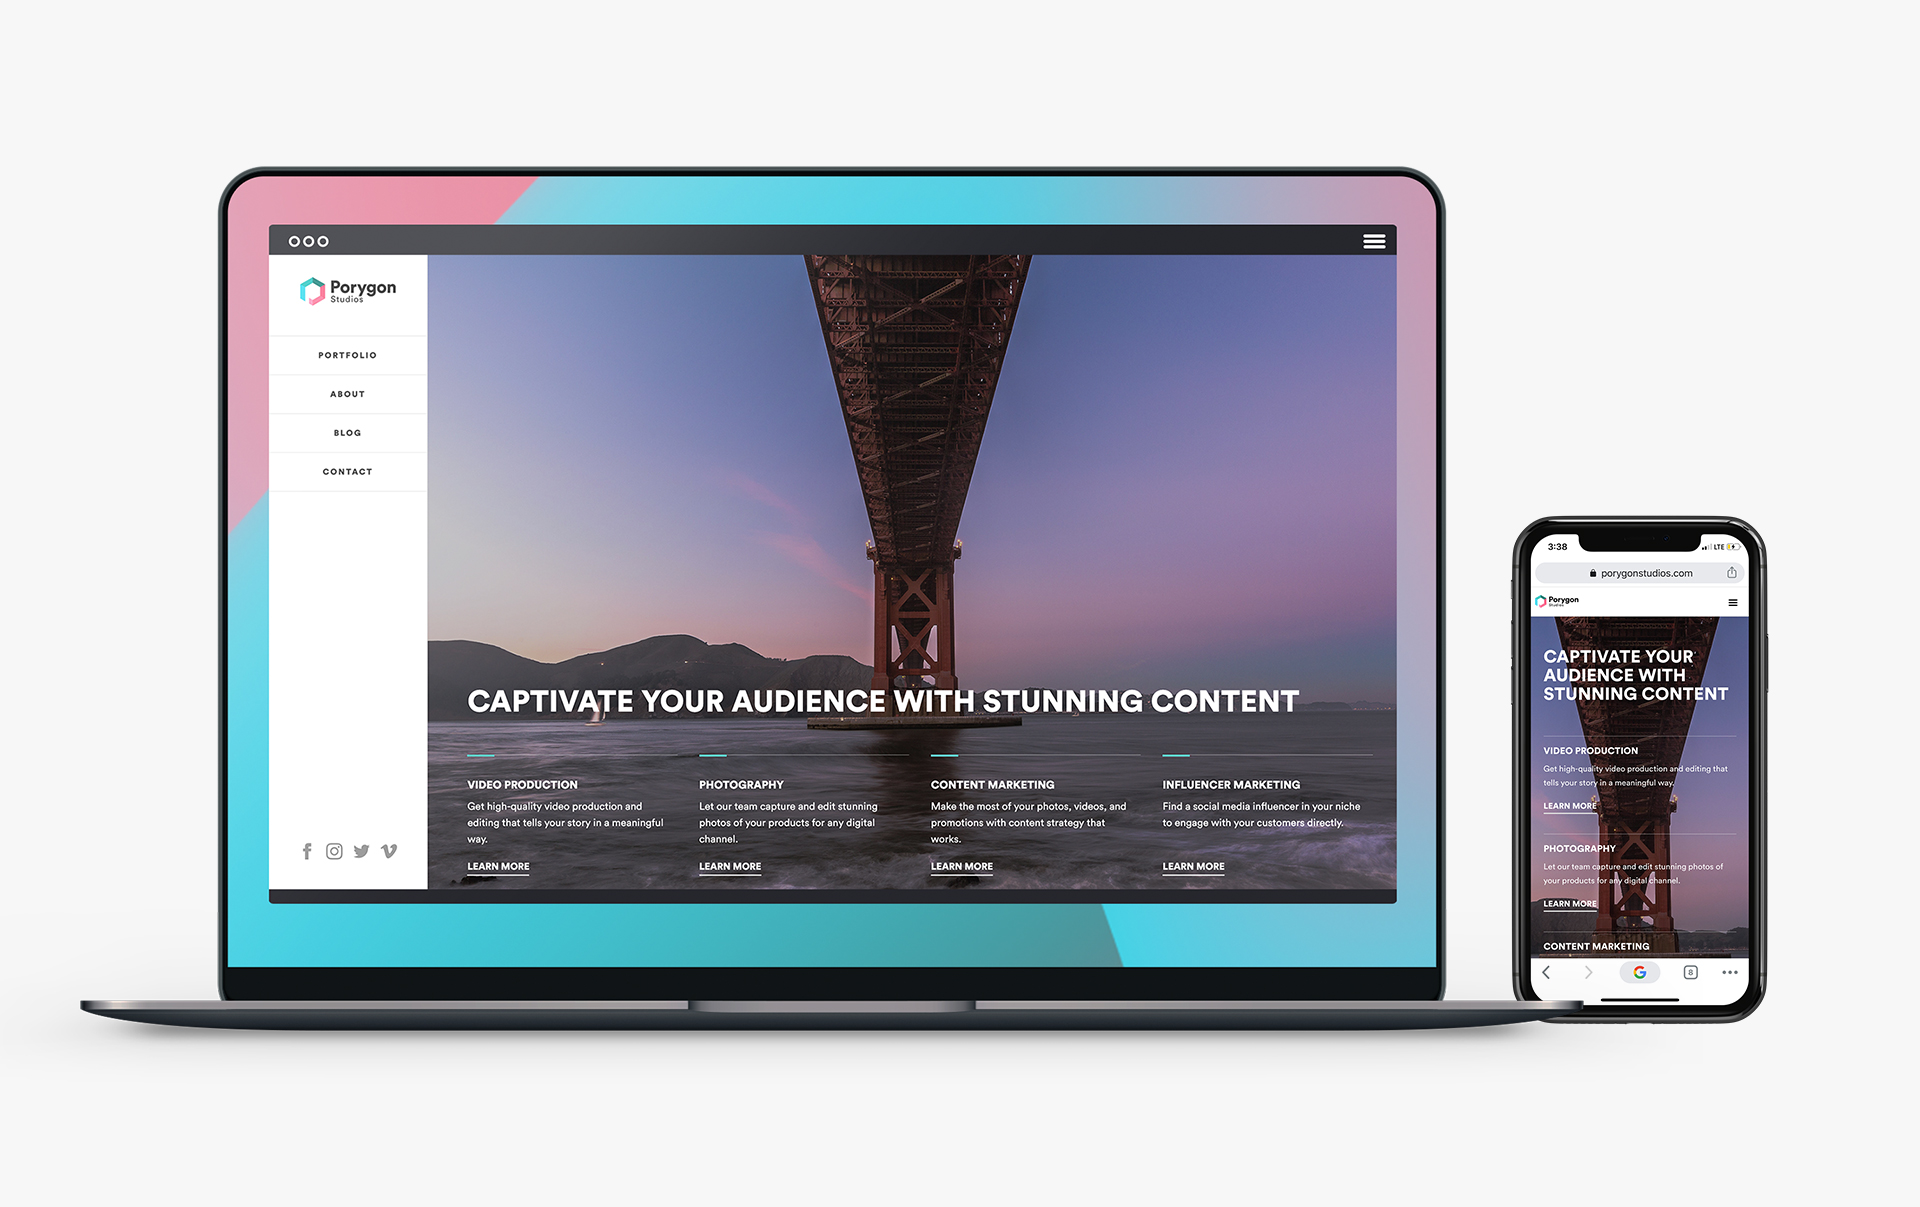 Porygon's custom website designed and developed using Webflow.